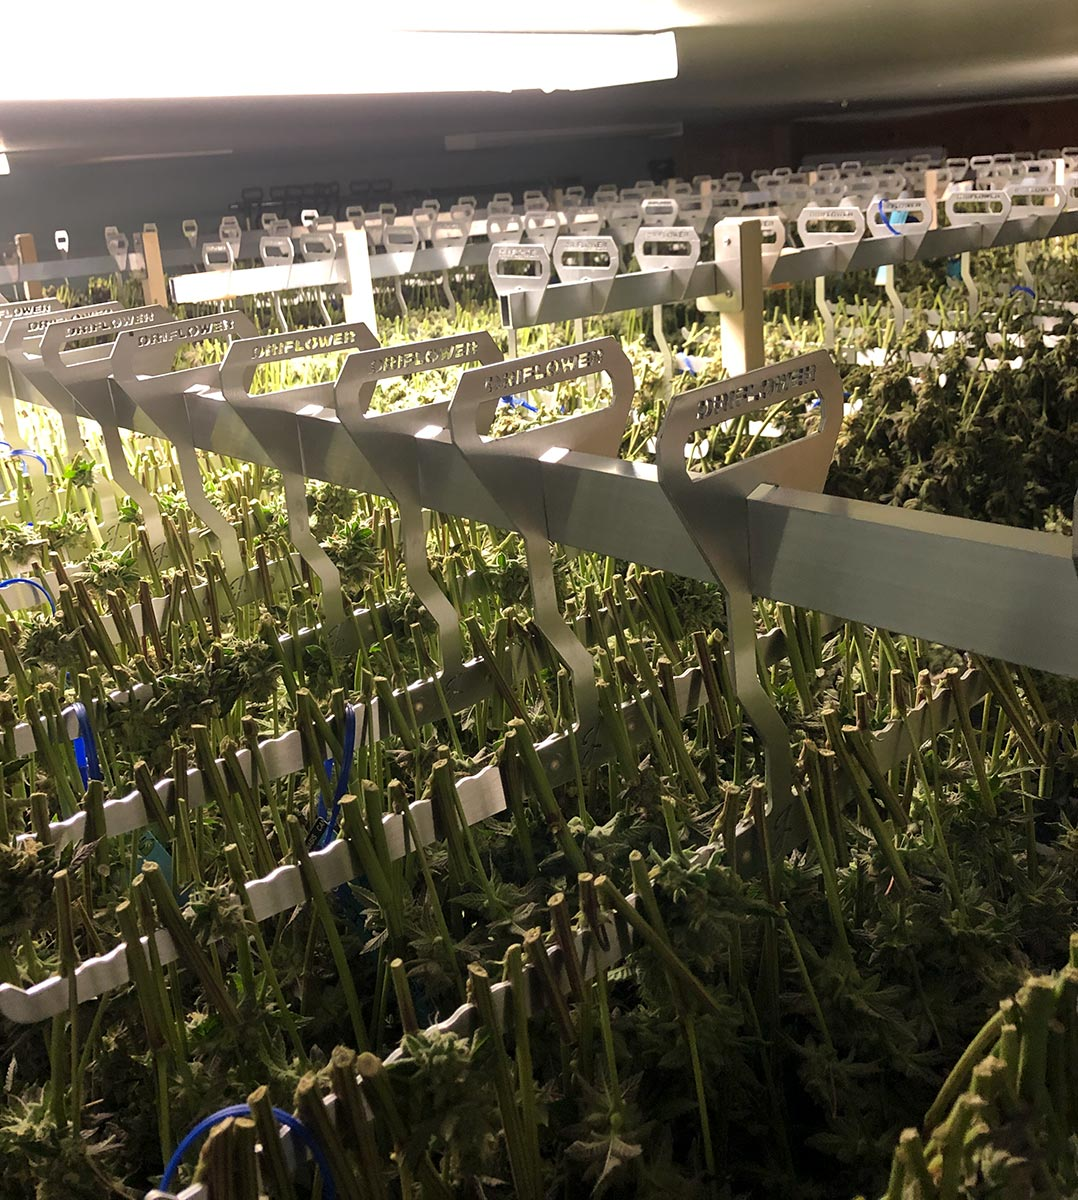 Large harvest drying on DriFlower racks stacked to the ceiling